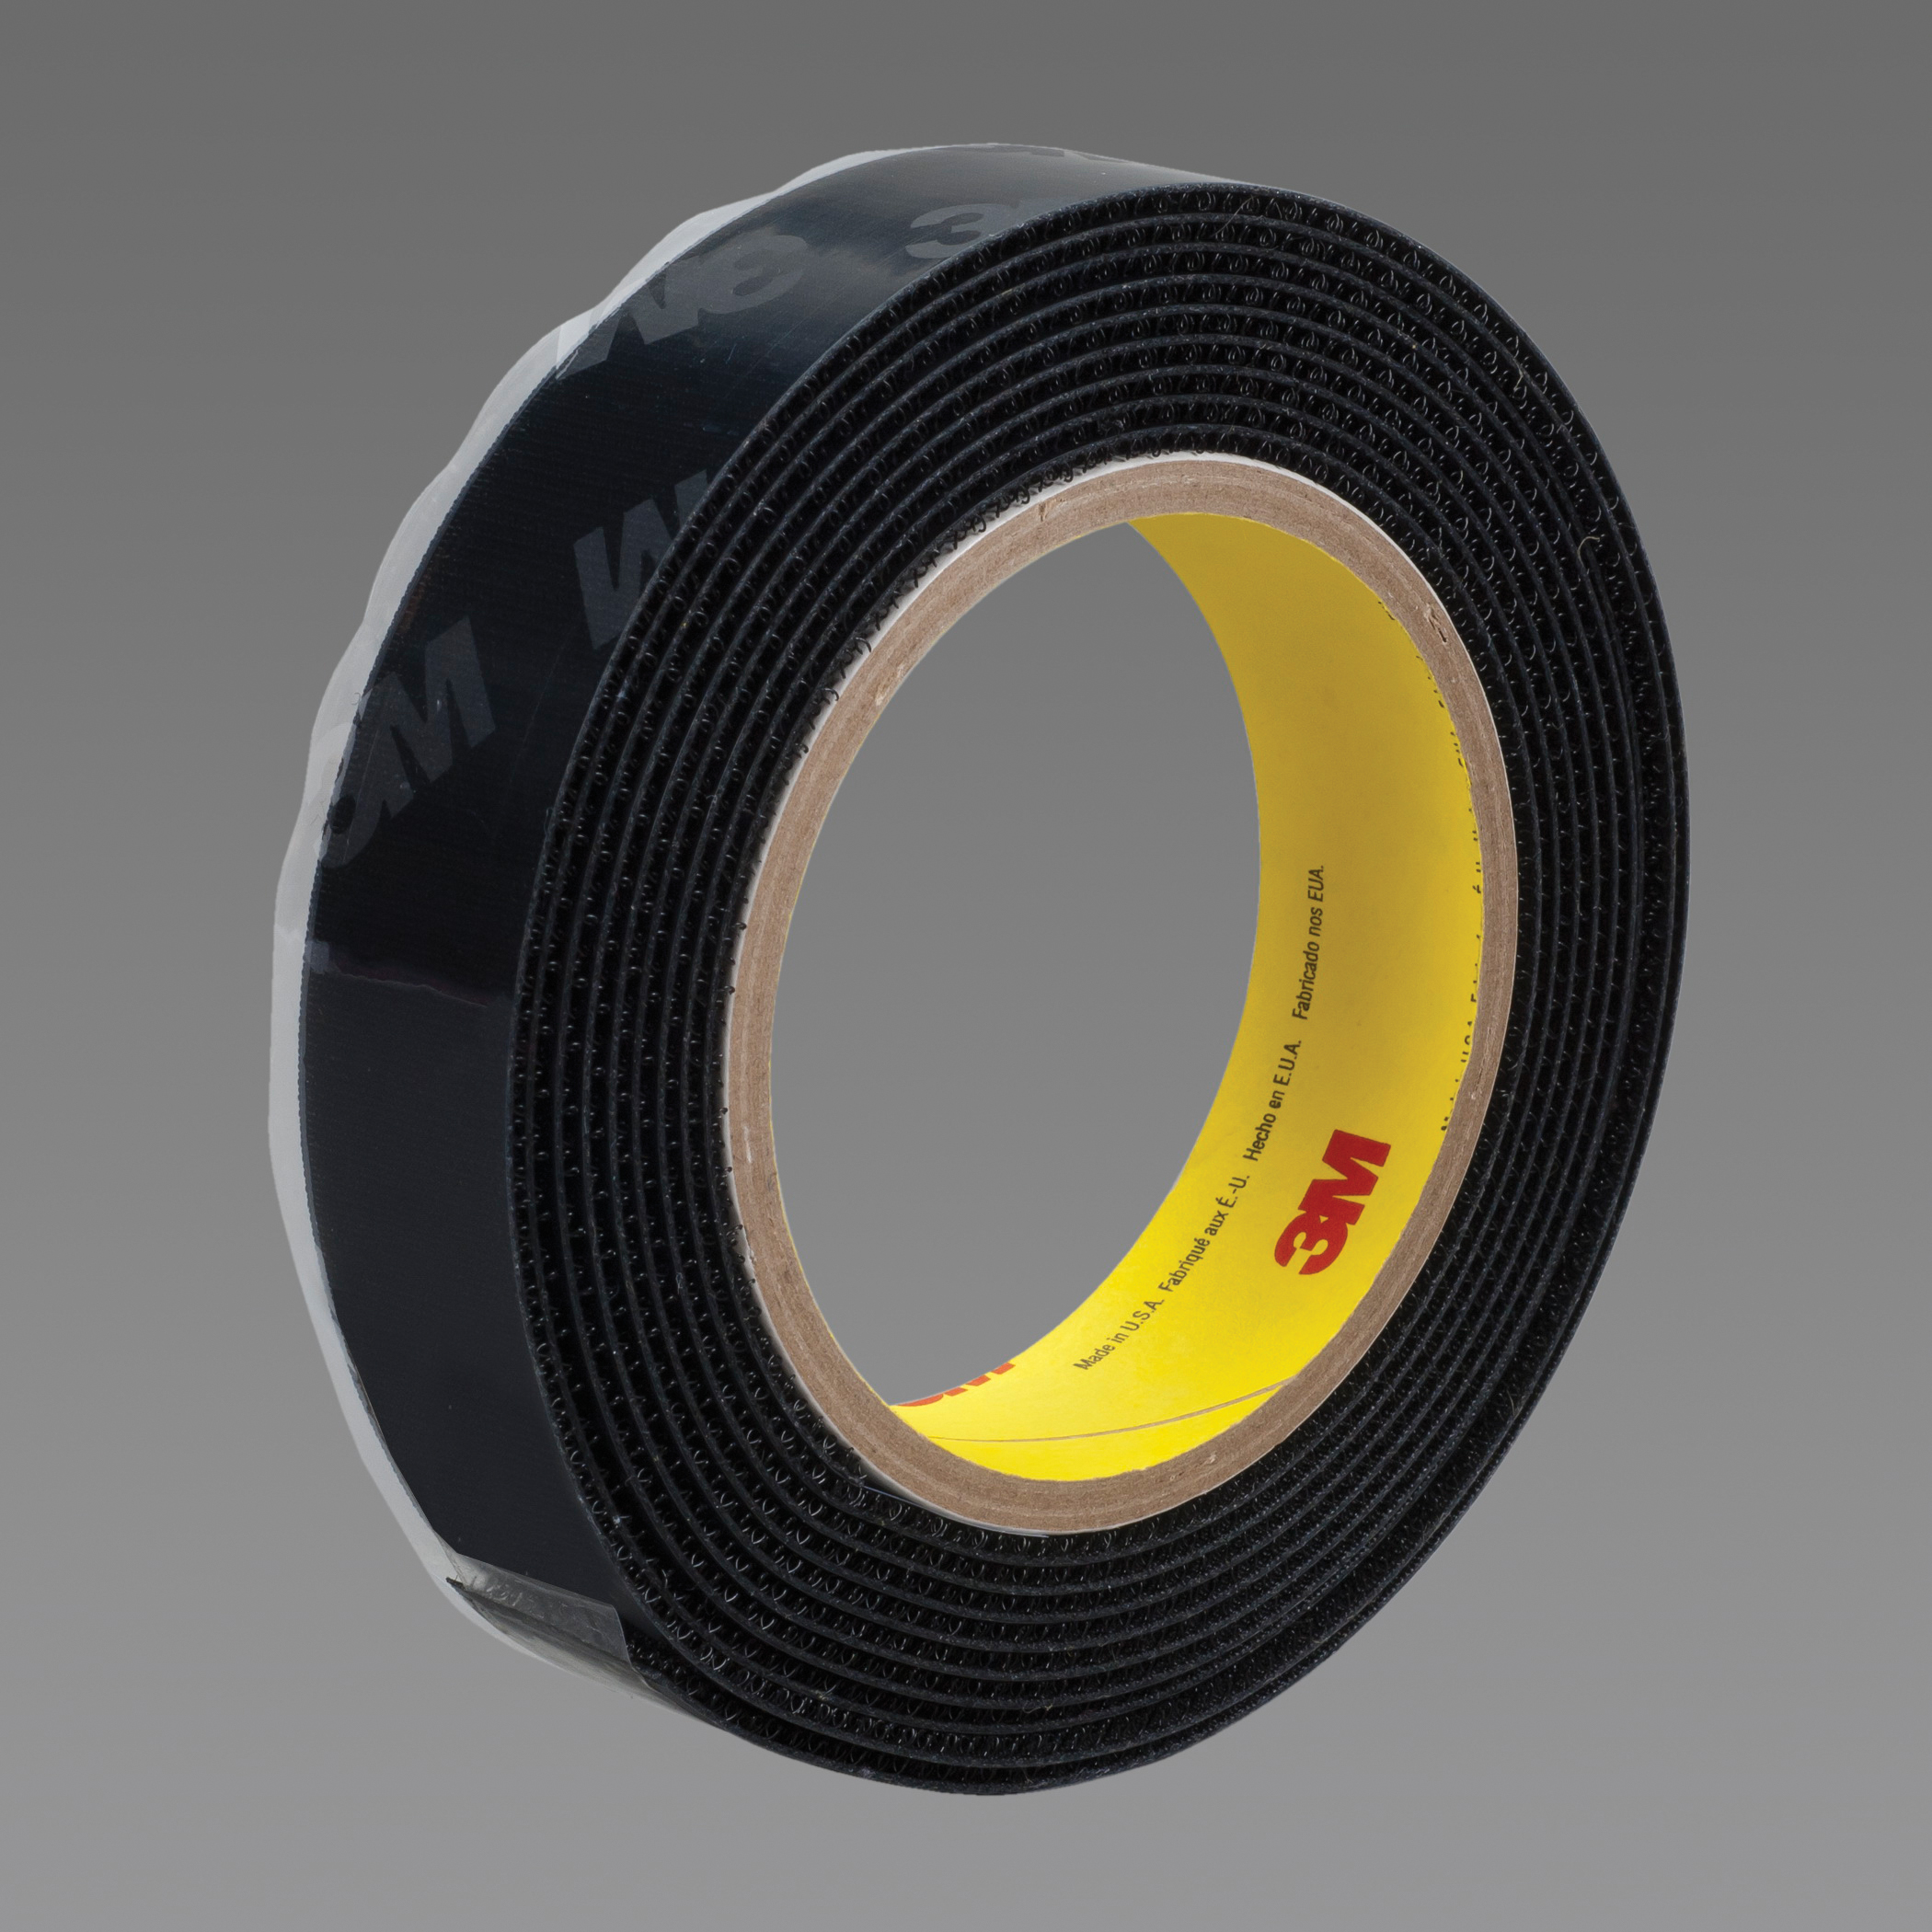 3M™ 021200-86261 Reclosable Hook Fastener Tape, 50 yd L x 2 in W, 0.15 in THK Engaged, Modified Rubber Adhesive, Woven Nylon Backing, Black